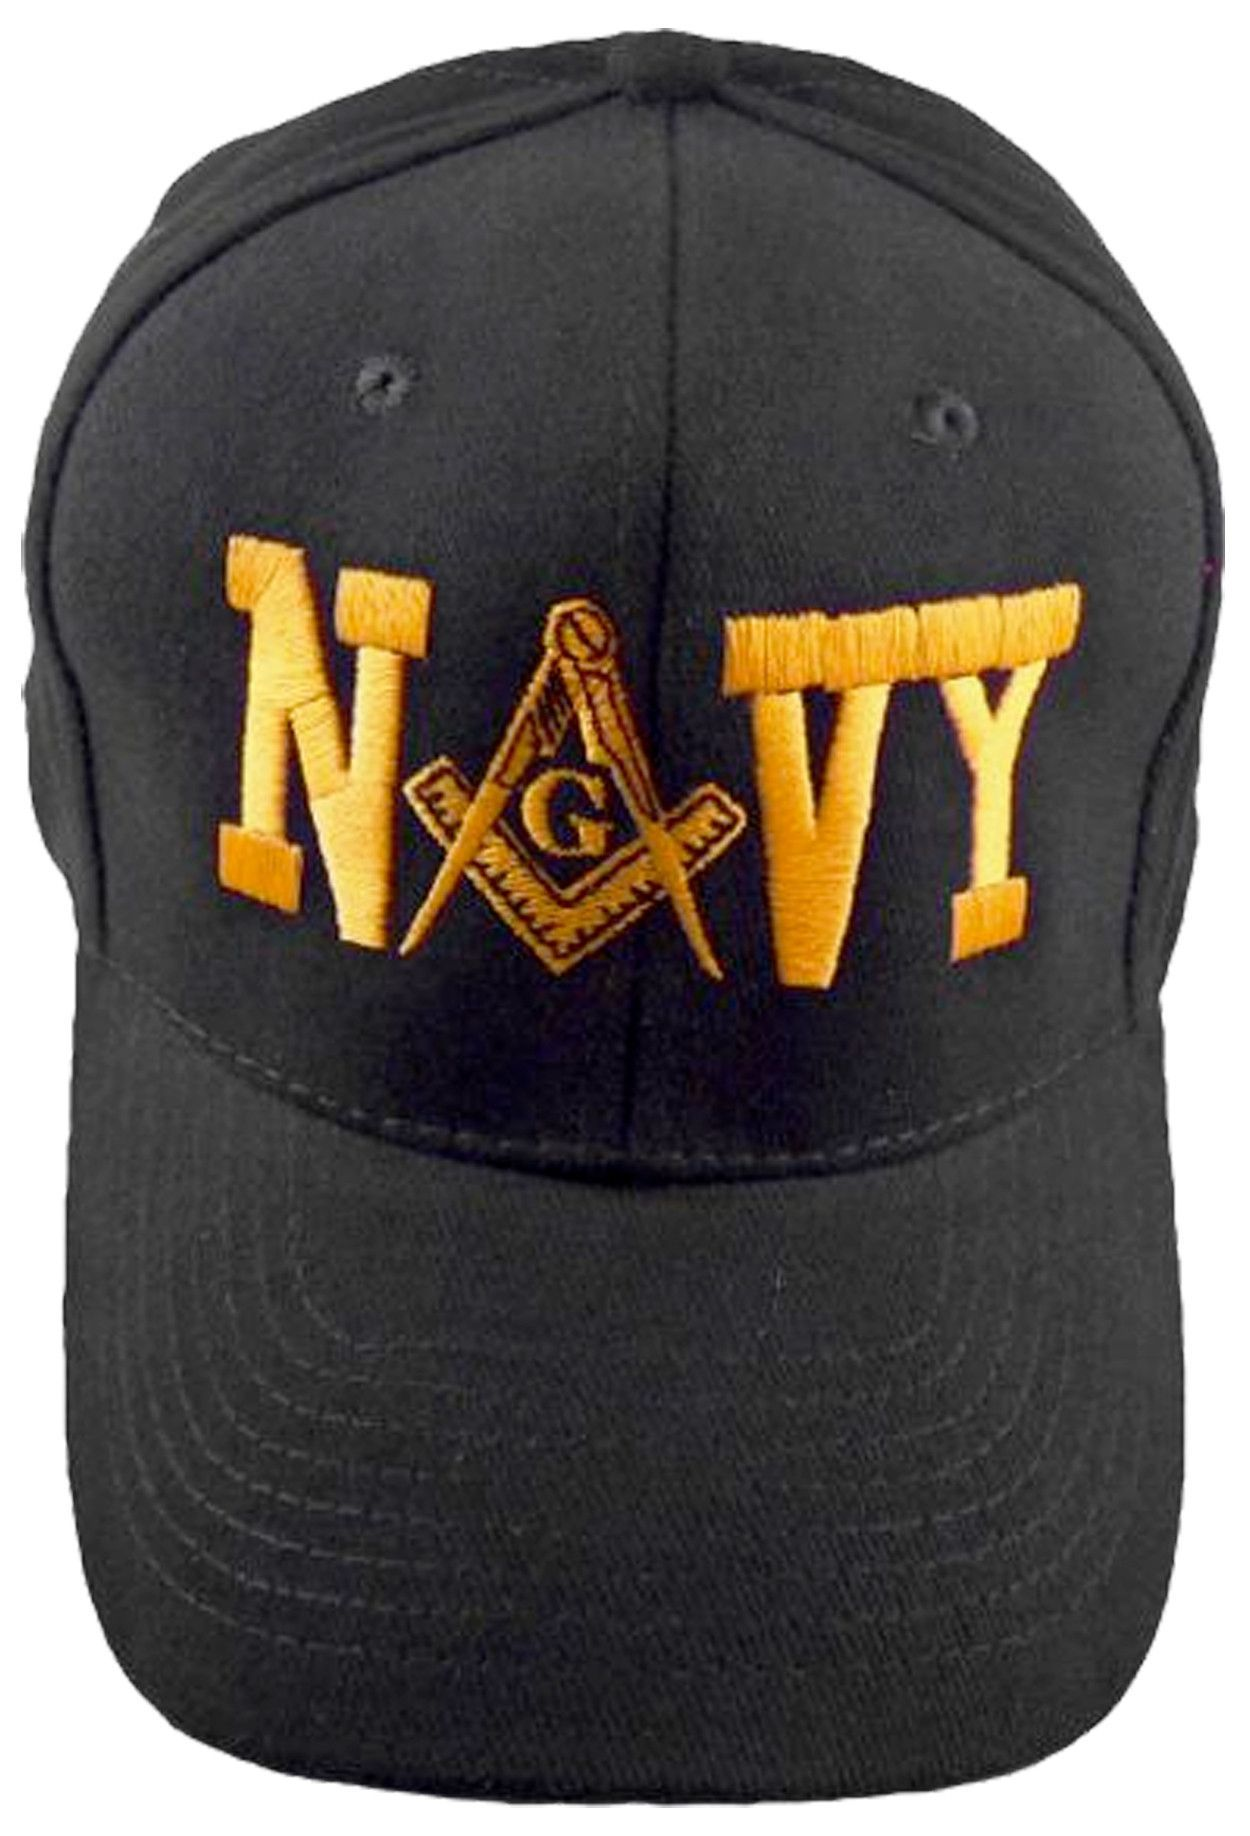 d20b0cc38 U.S. NAVY Black Masonic Baseball Cap Mason Logo Hat for Freemasons Shriners  Prince Hall Masons Headwear